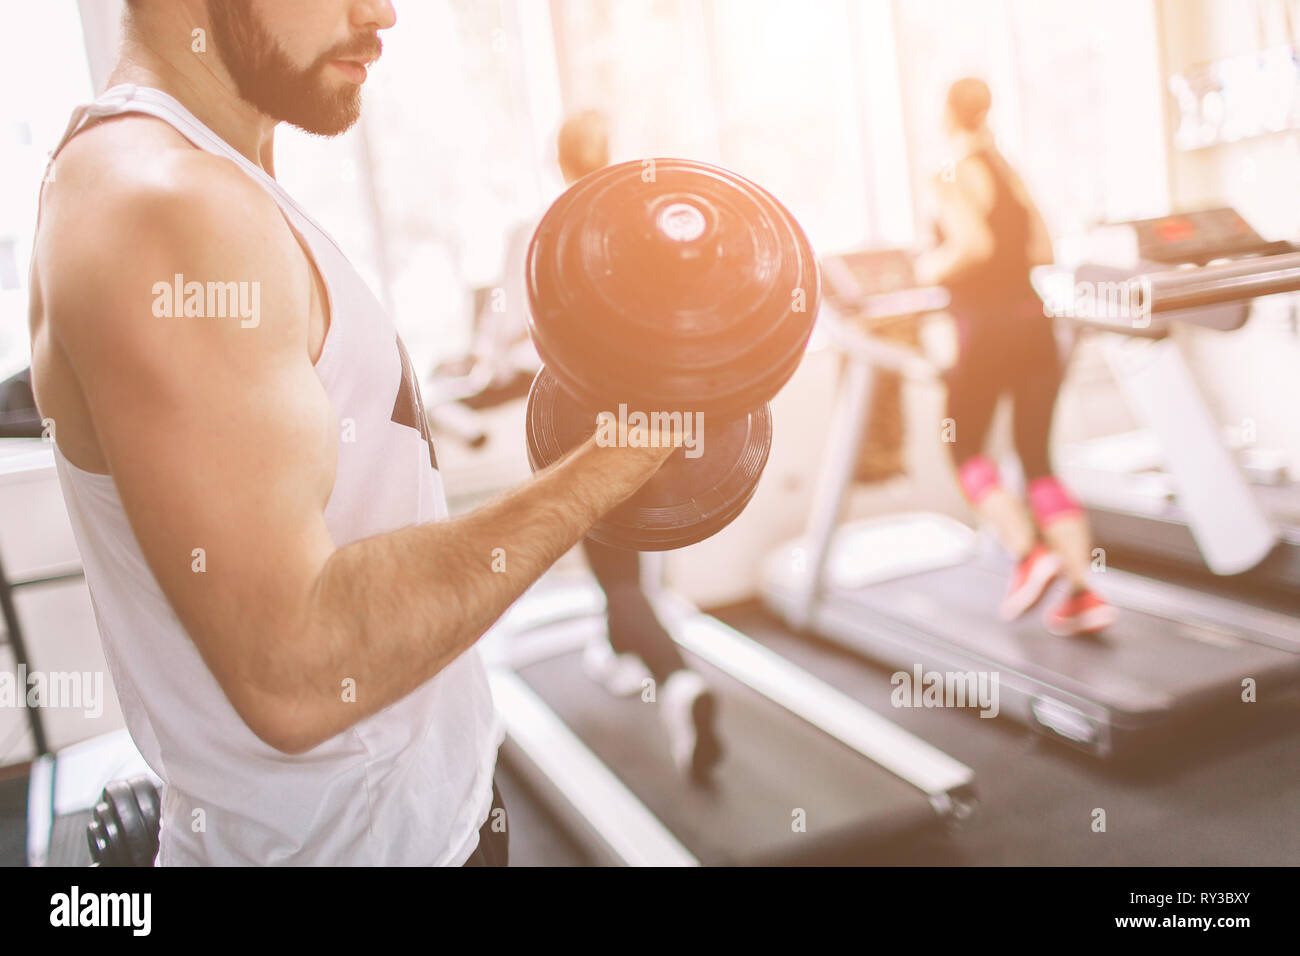 Muscular Bearded man during workout in the gym. Athlete muscular bodybuilder in the gym training biceps with dumbbell. Indoor fitness Stock Photo